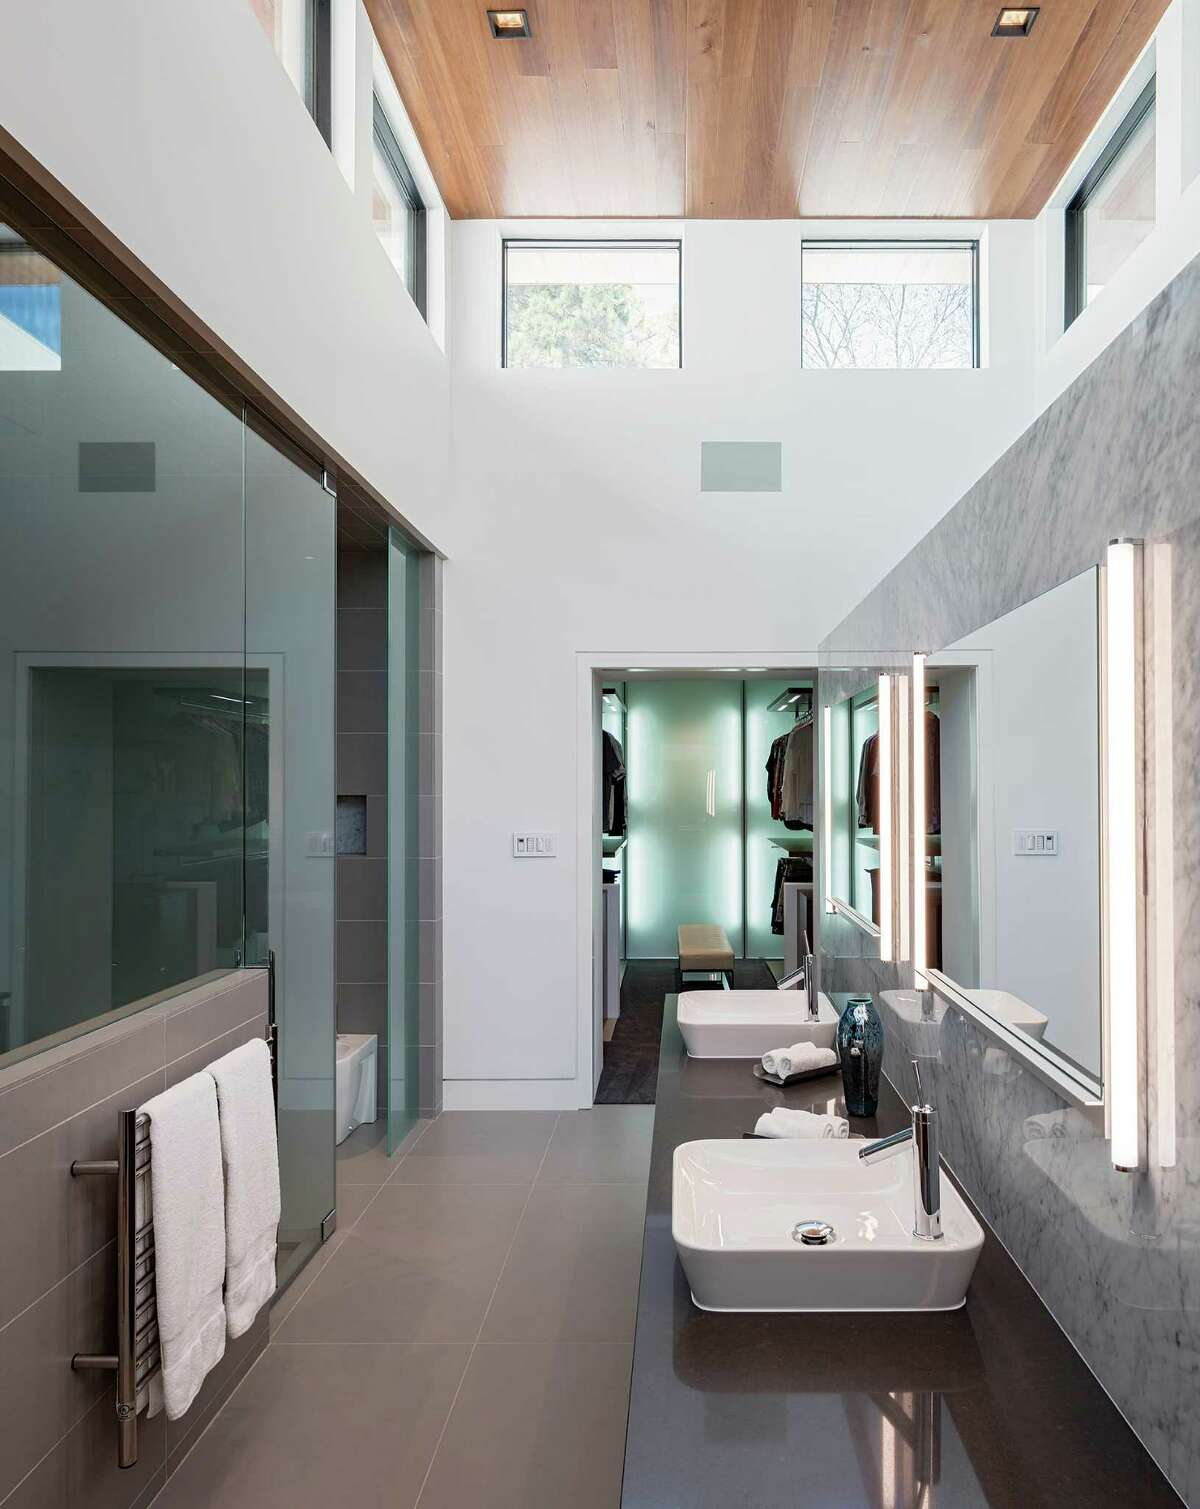 Clerestory windows bring natural light into the master bathroom designed by Messick.